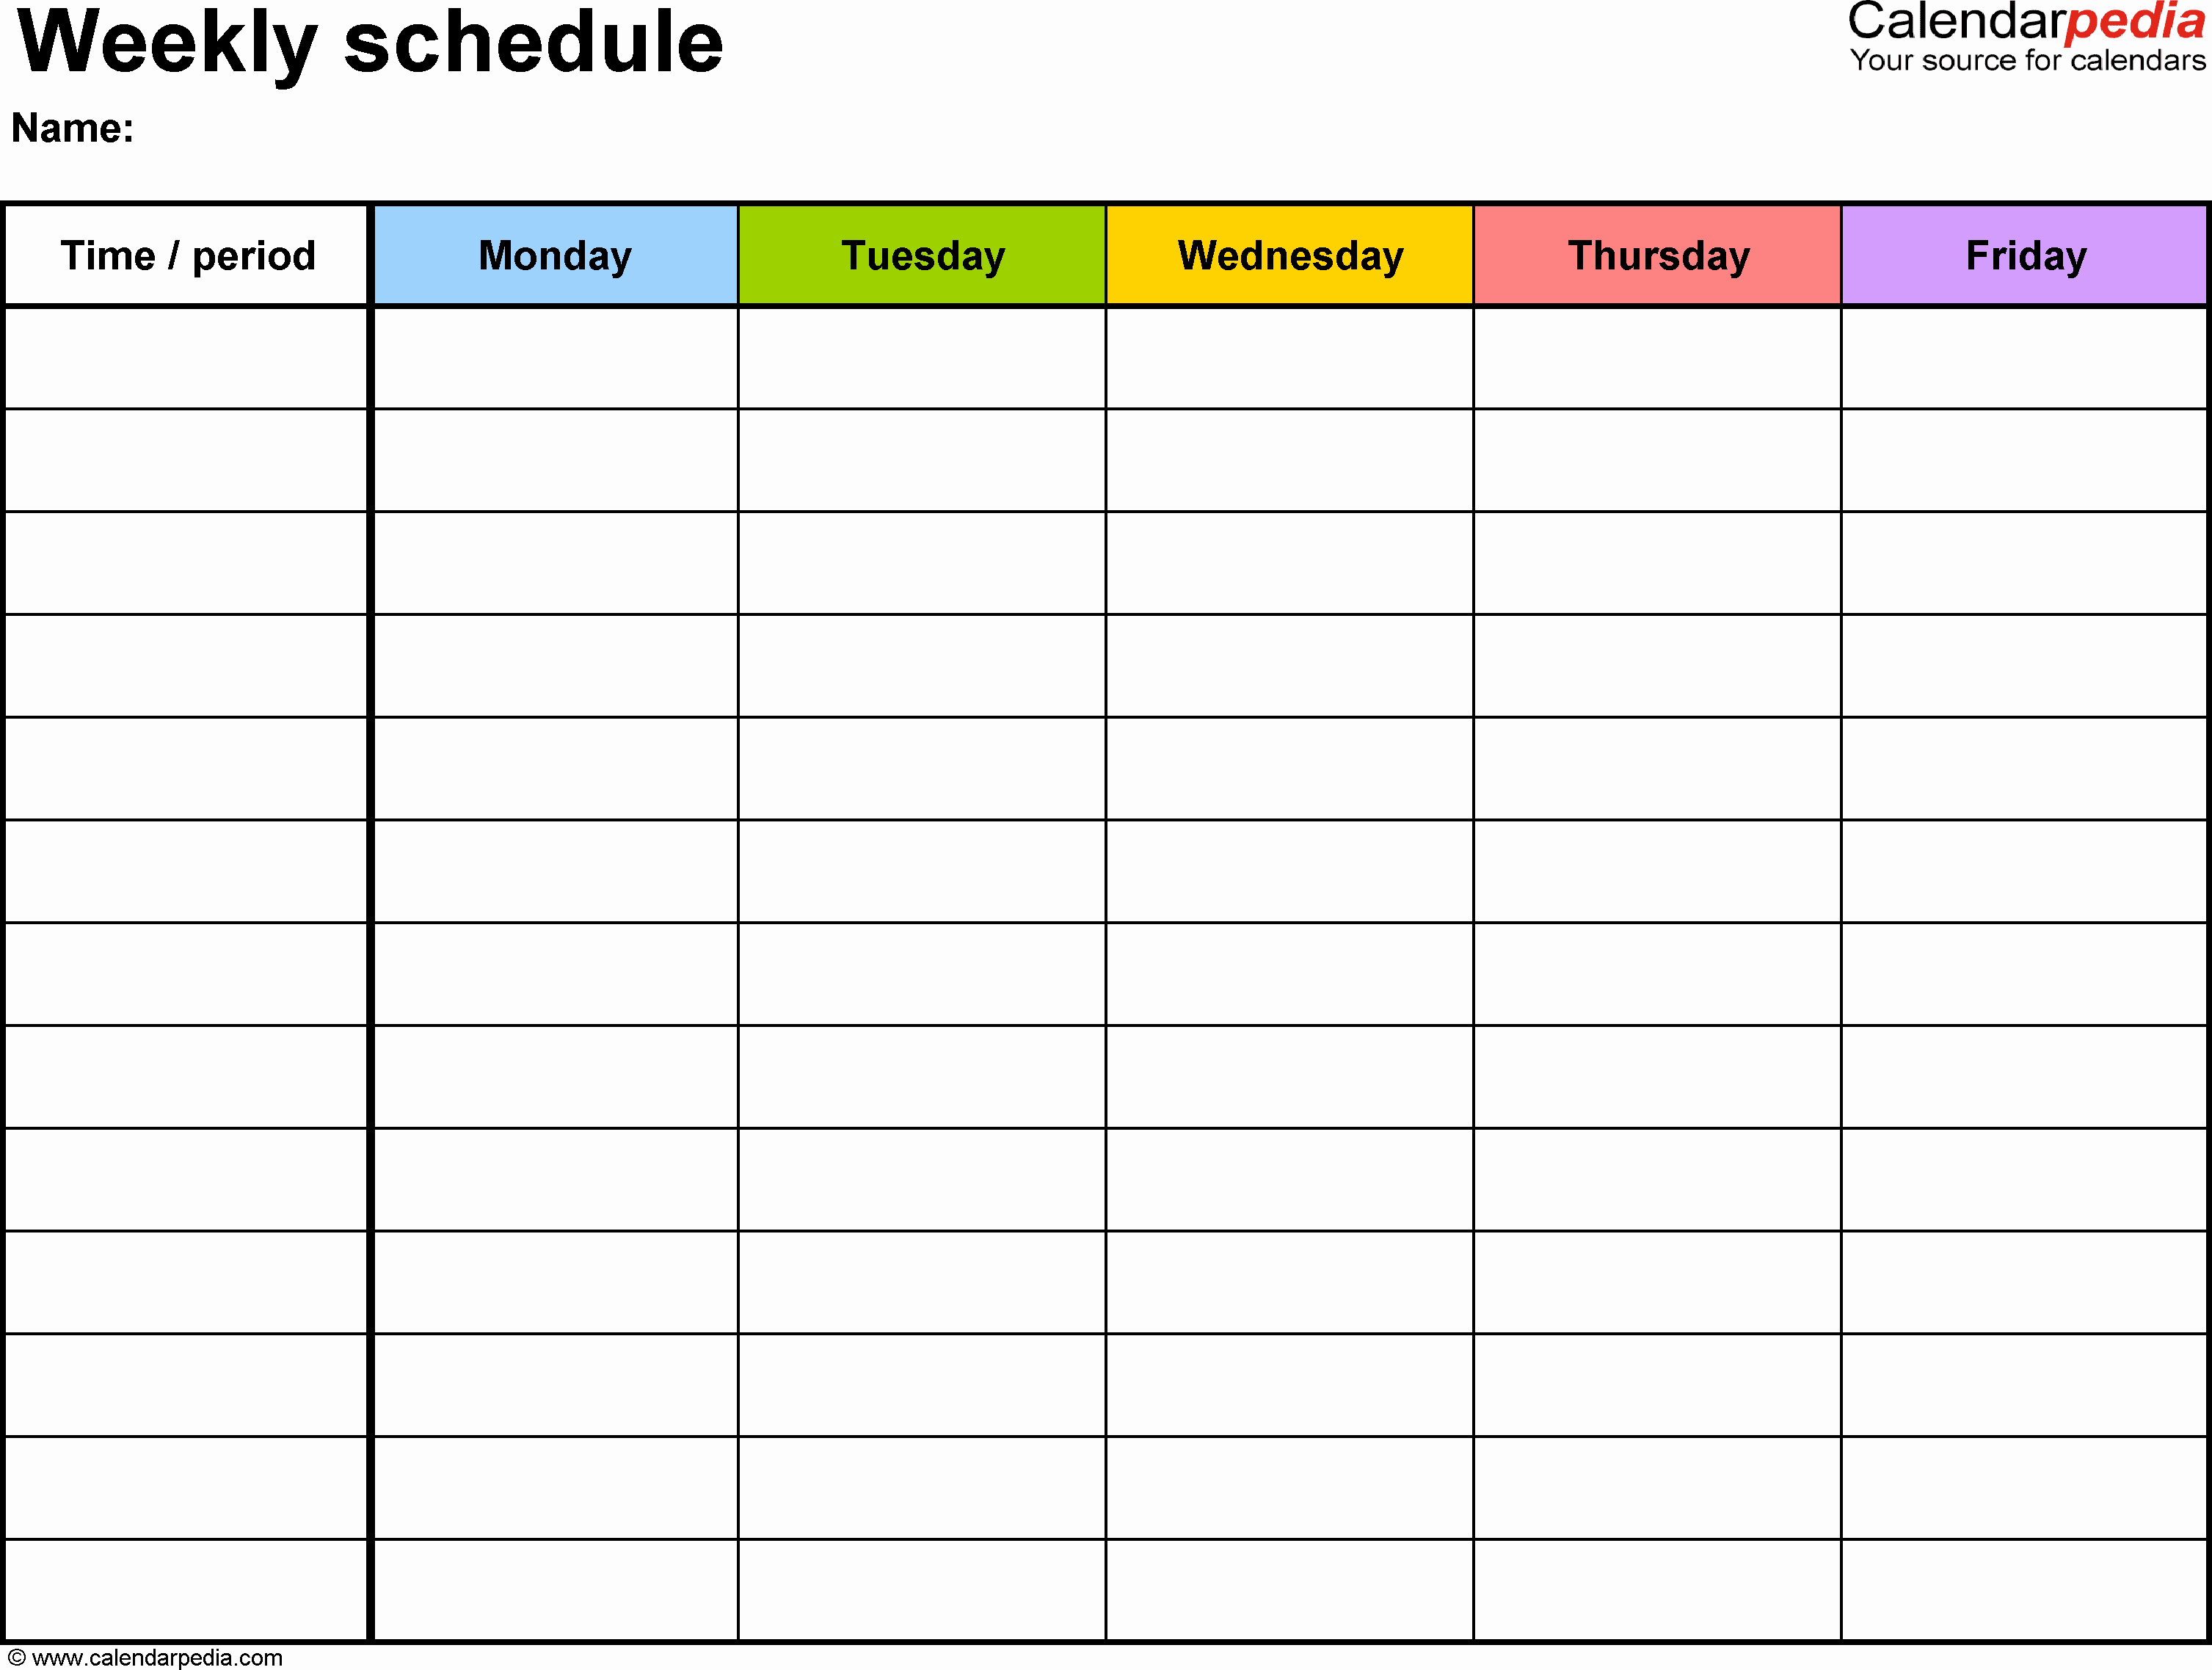 One Week Schedule Template Fresh Free Weekly Schedule Templates for Word 18 Templates